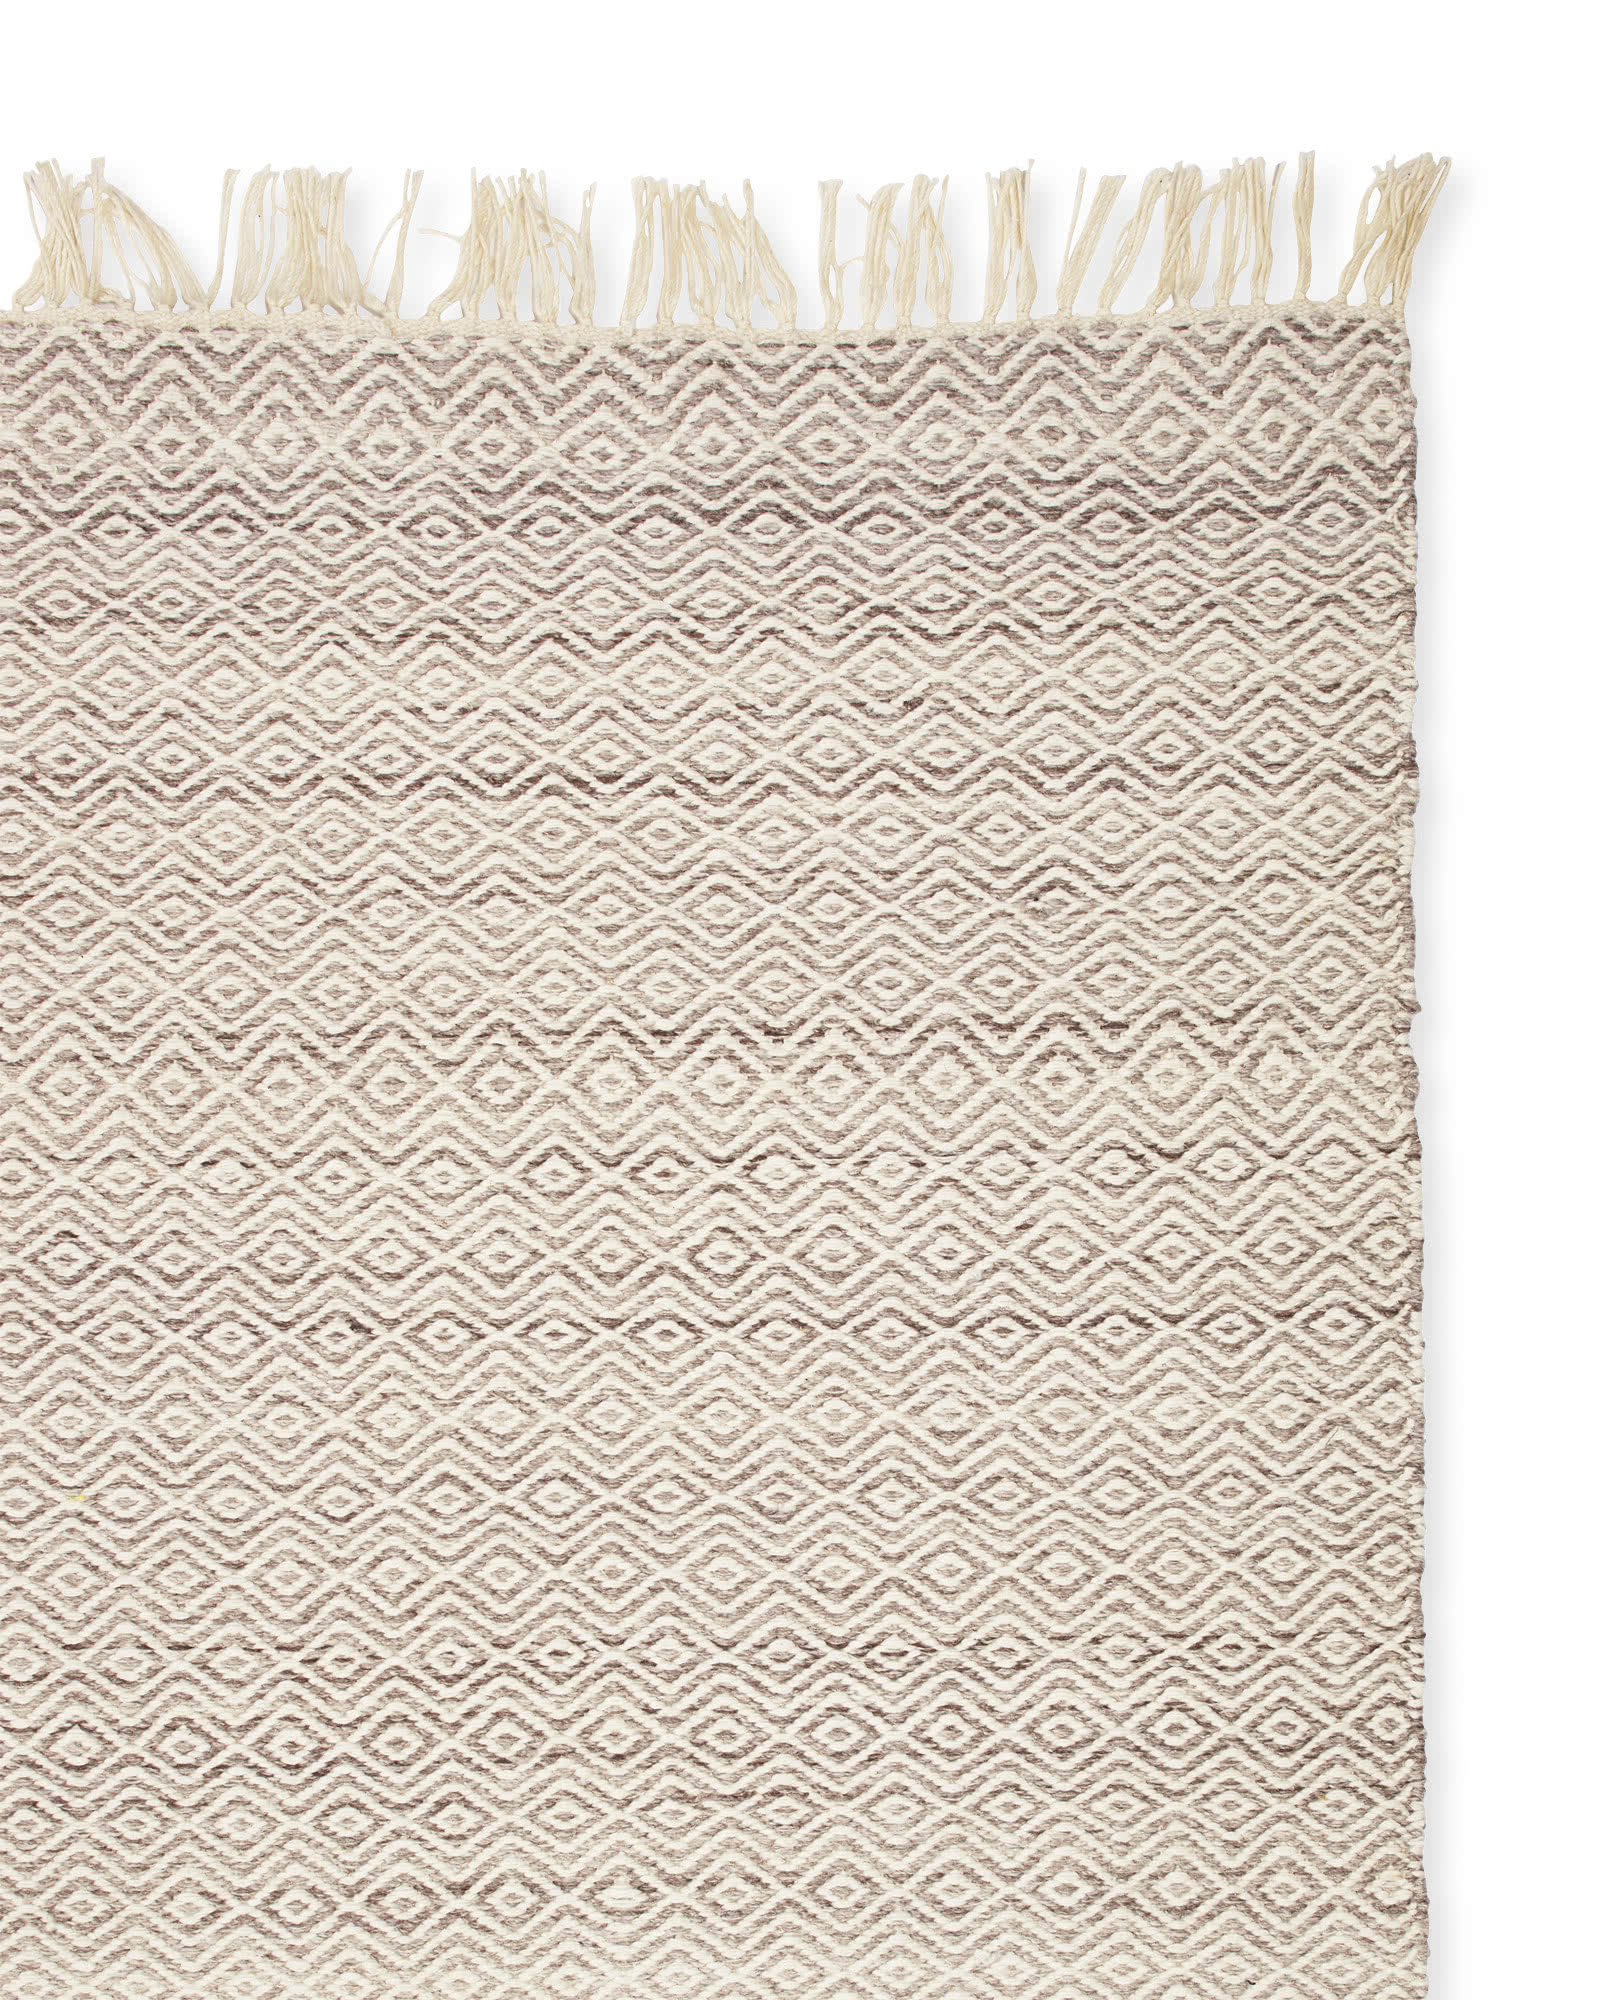 Seaview Rug Swatch, Earth